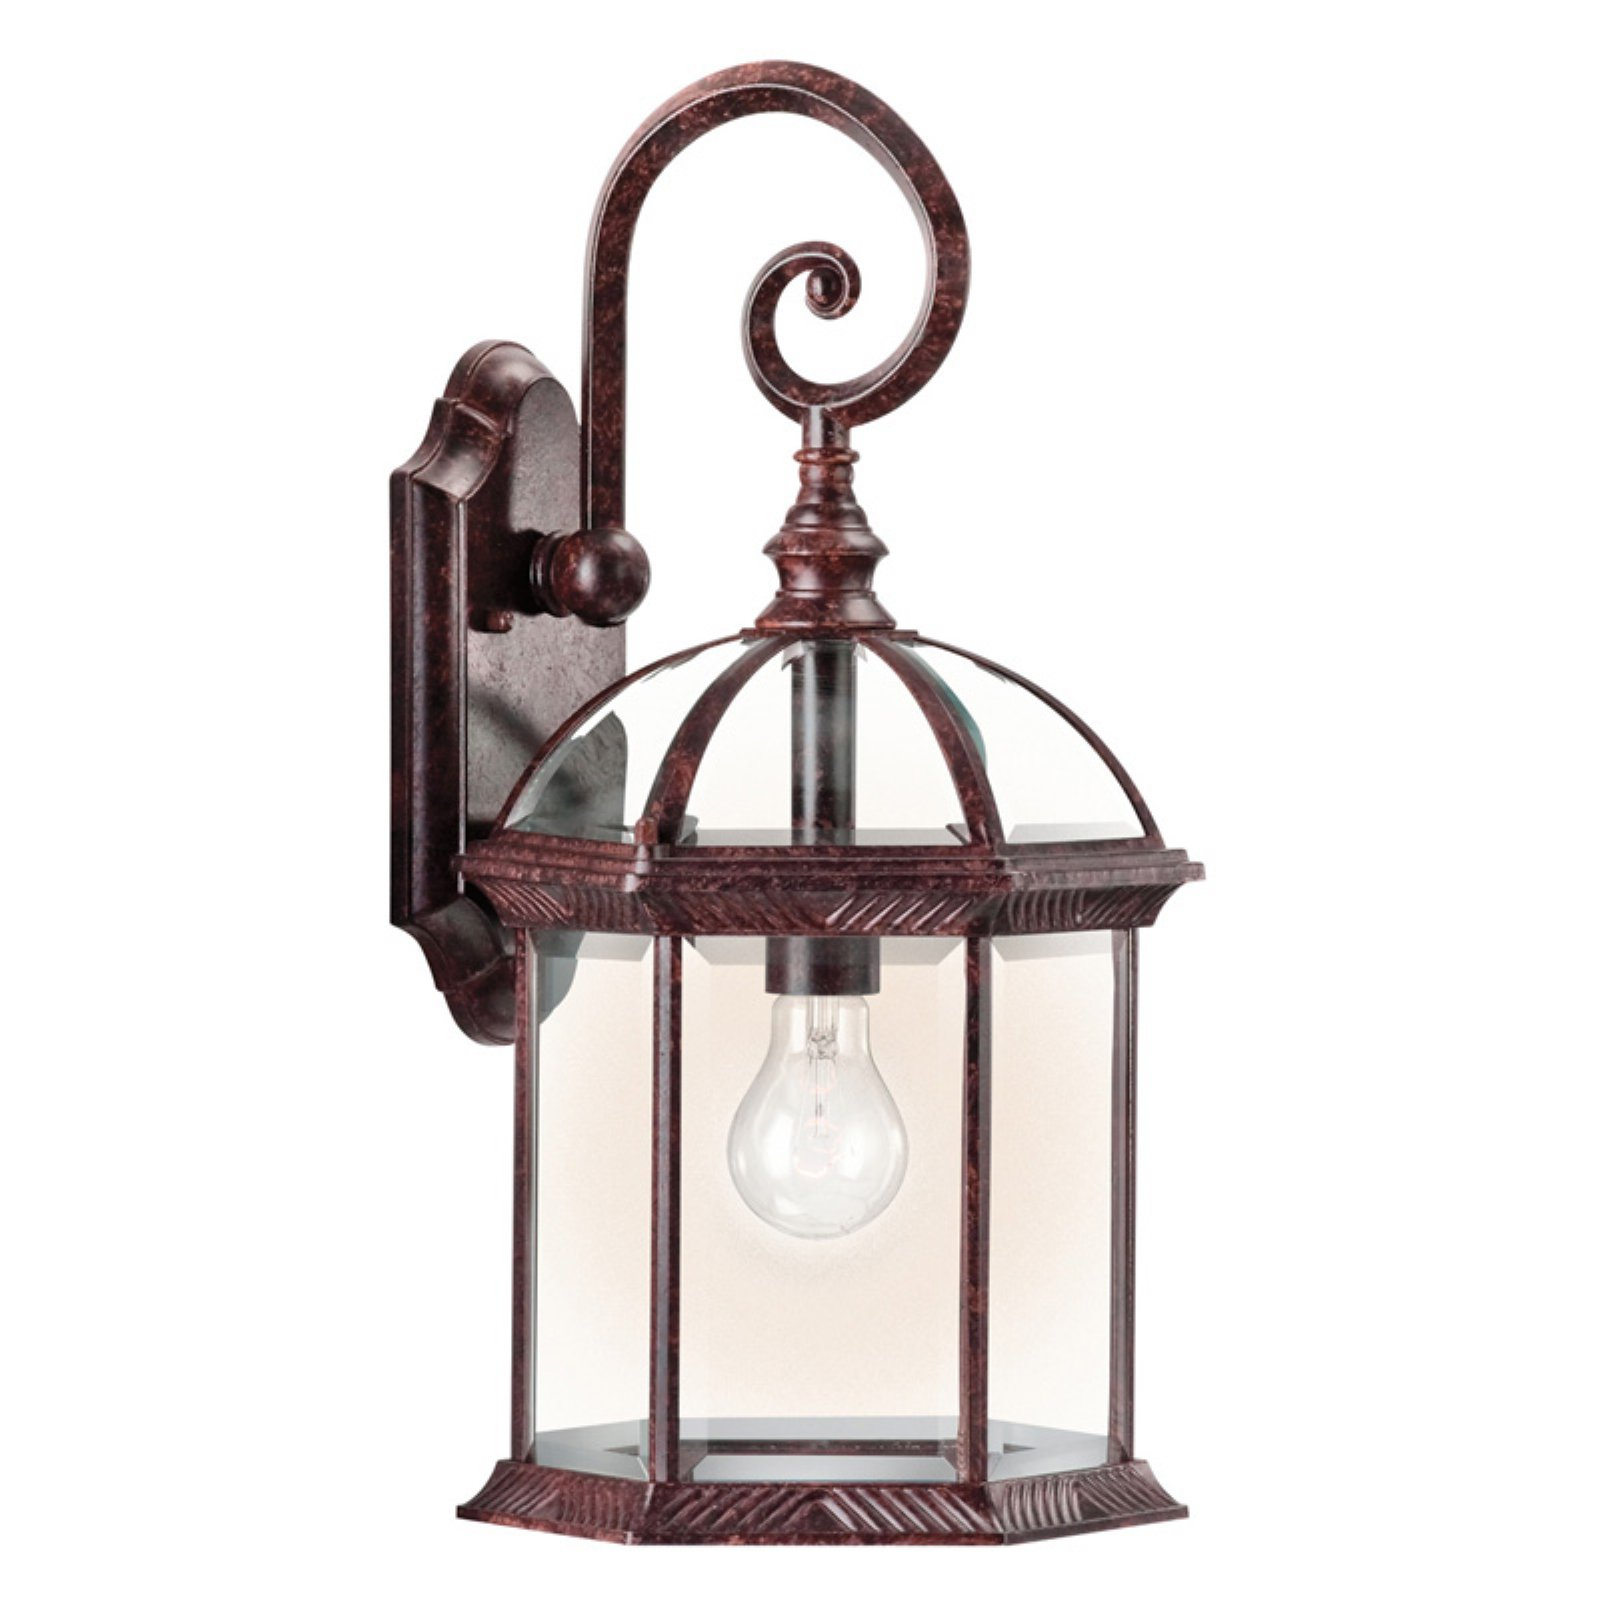 Kichler Barrie 49186L18 Outdoor Wall Light